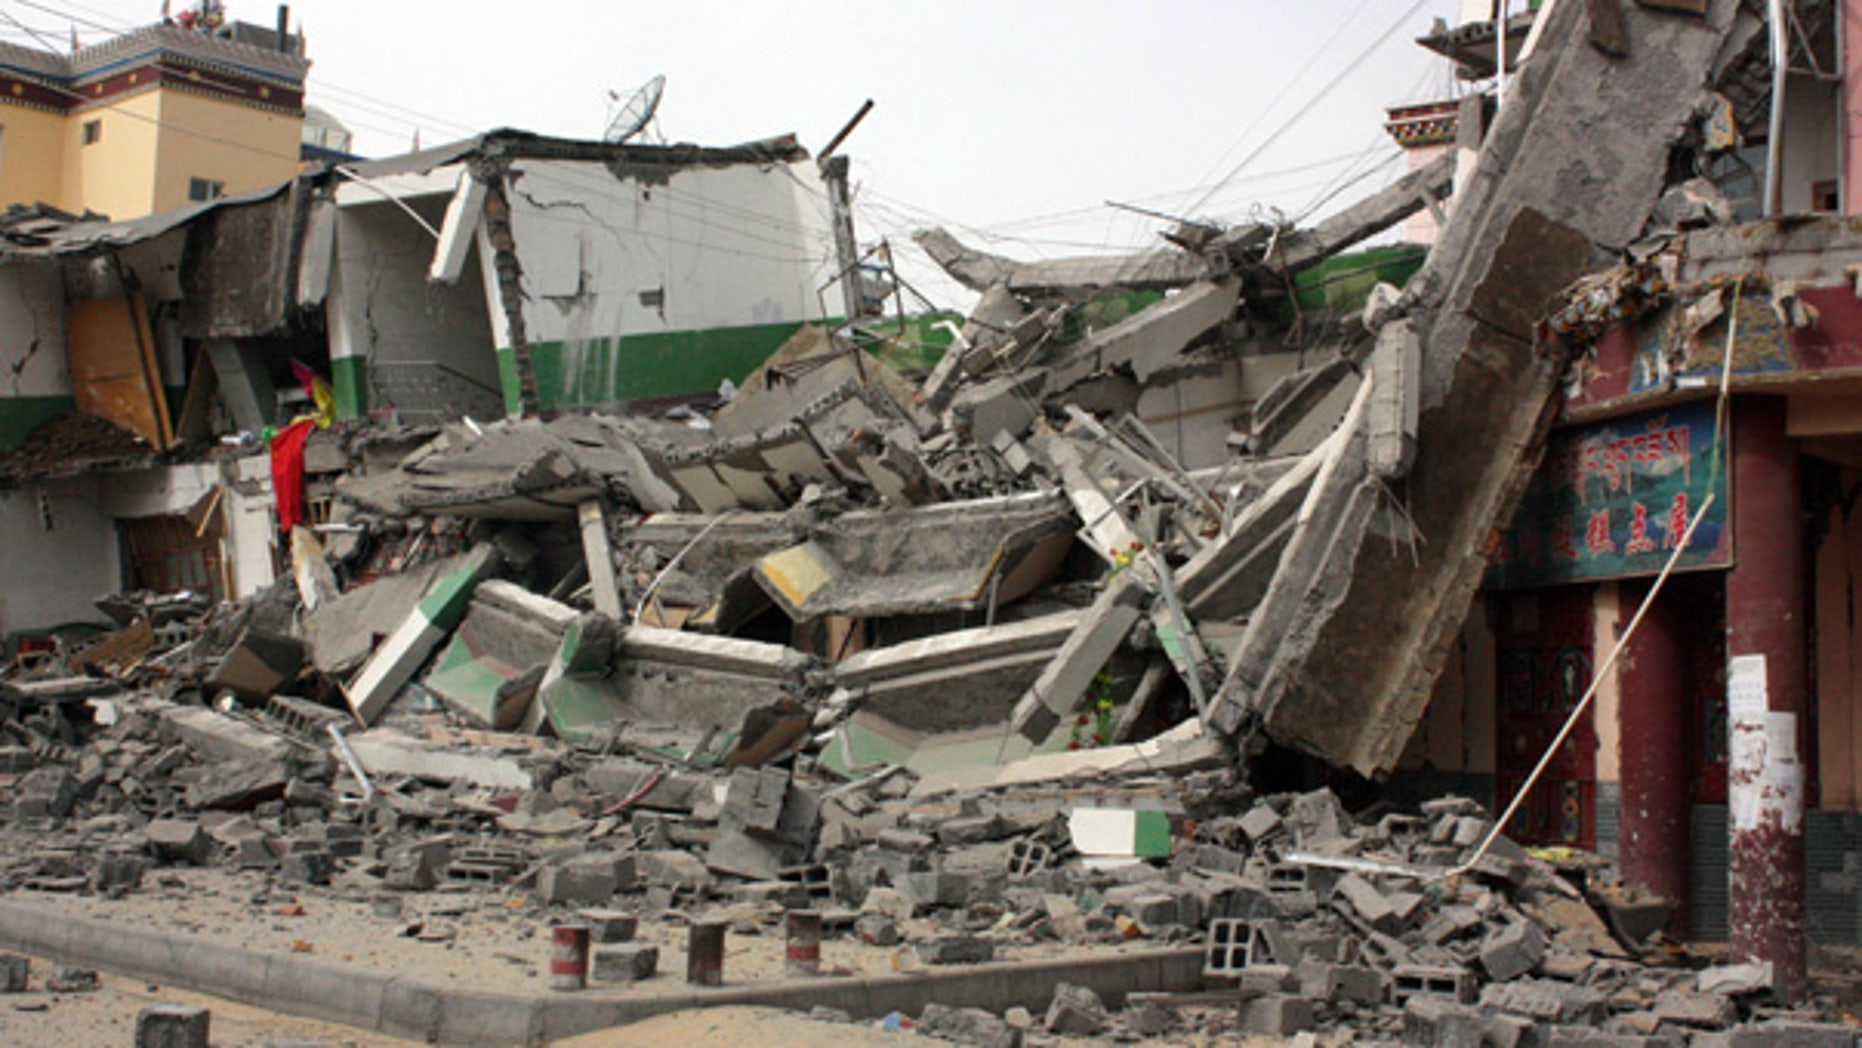 Apr. 14: A building is destroyed by the earthquake in Jiegu Town, western Qinghai Province, China.